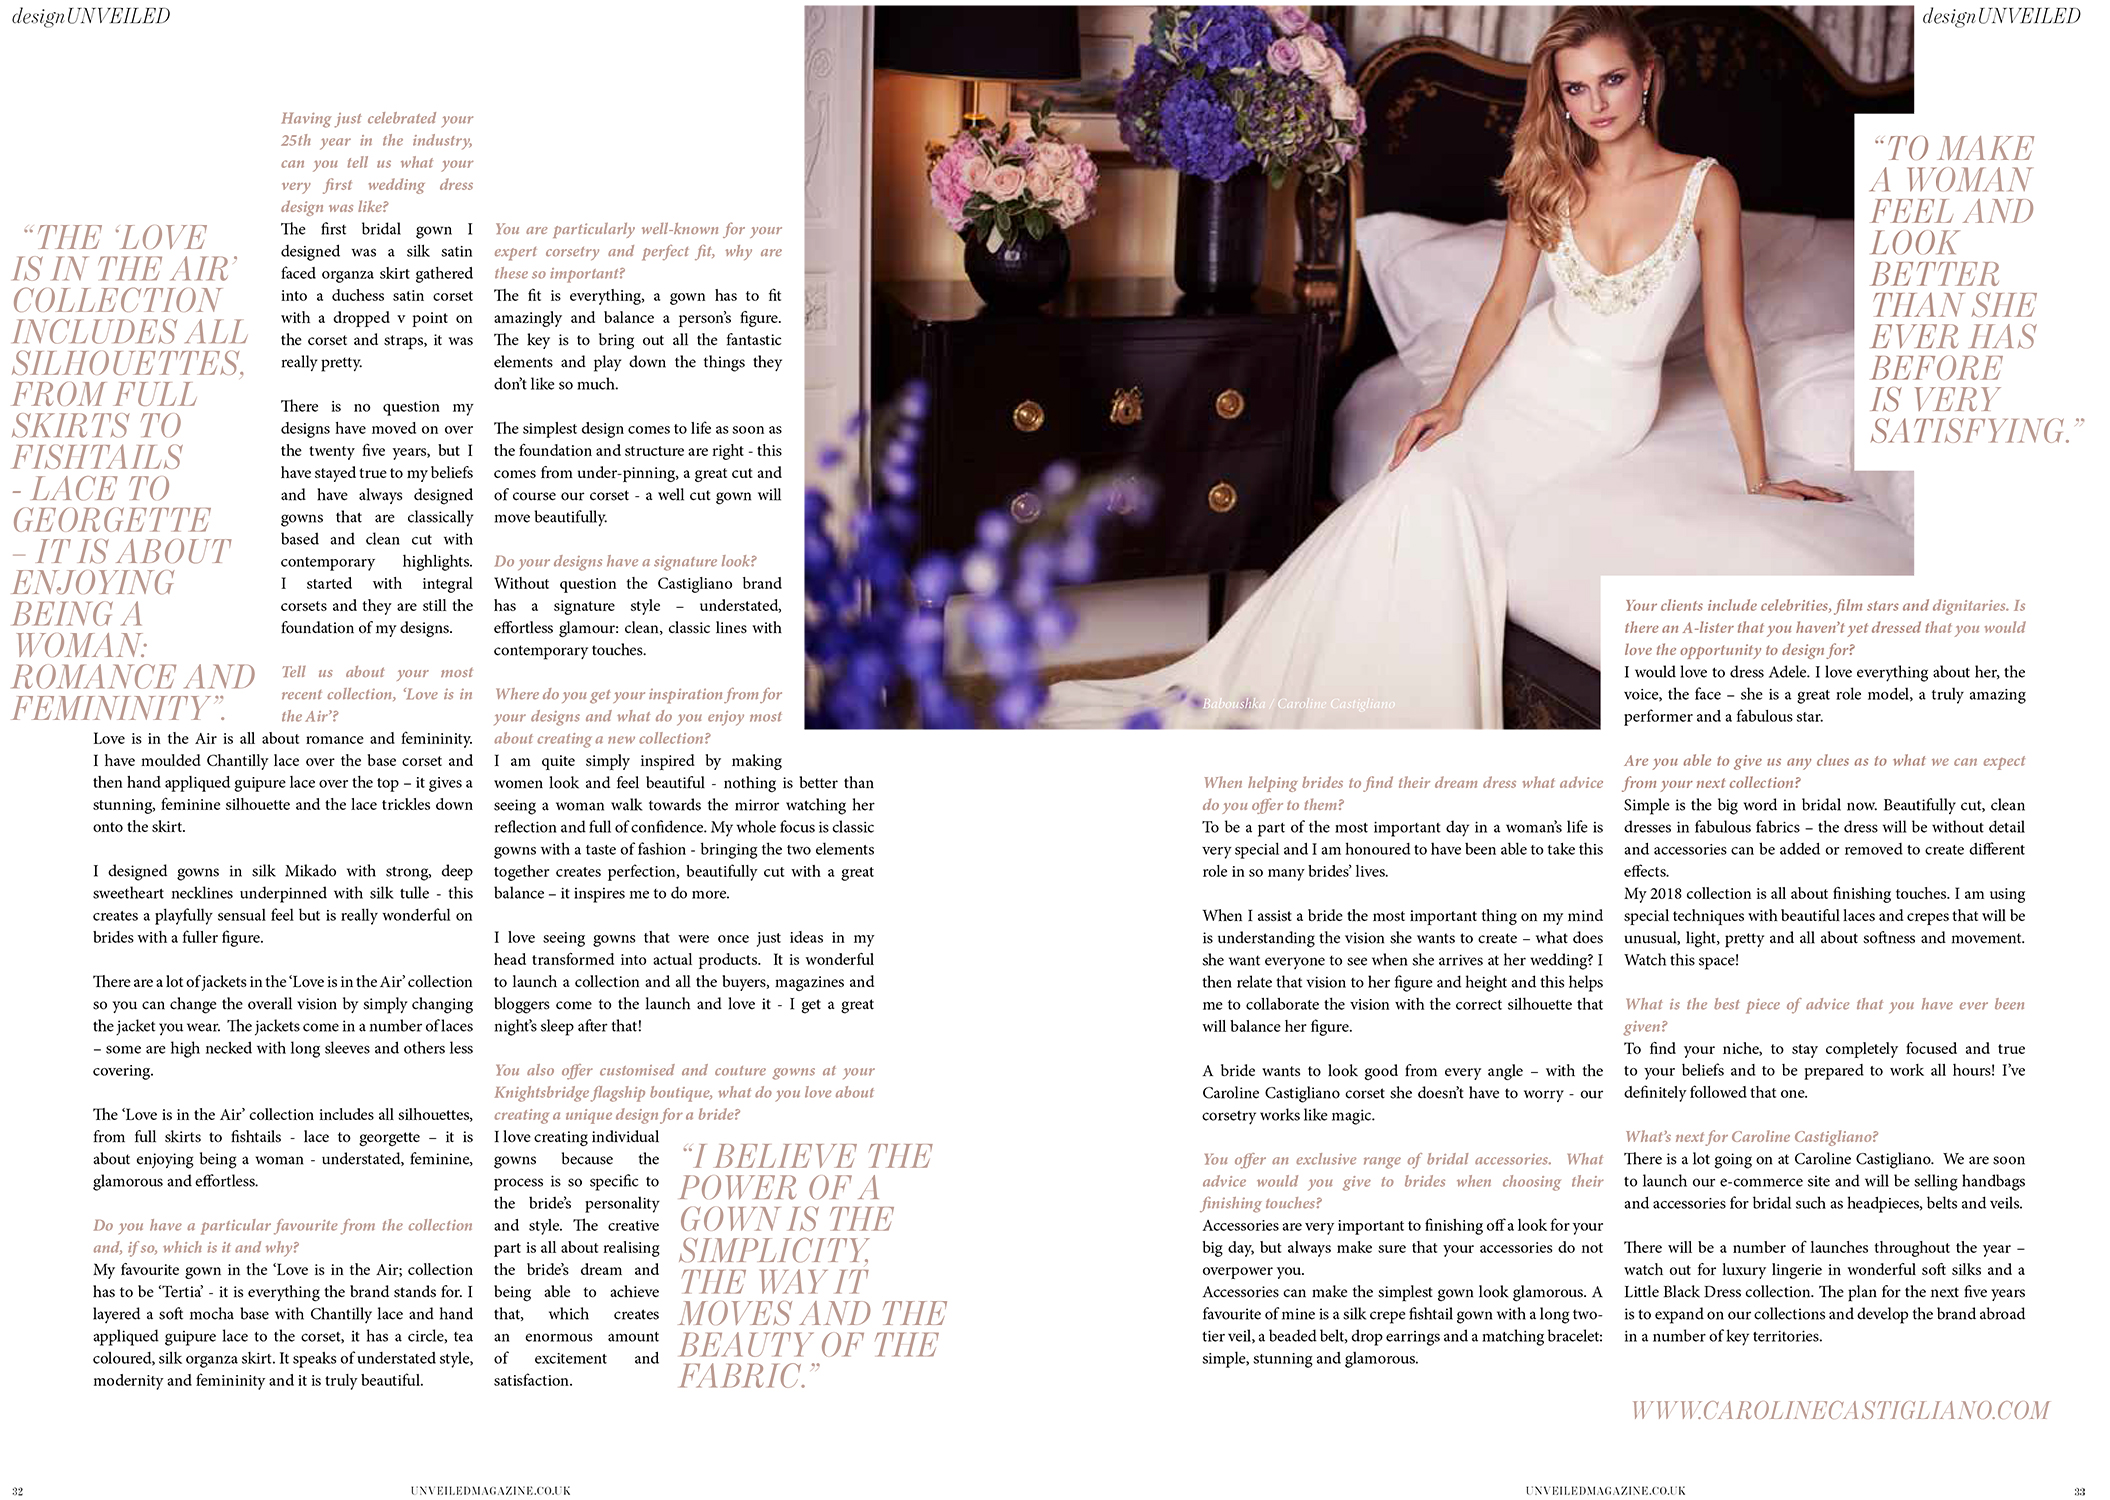 UNVEILED_ISSUE07_CarolineCastiglianoInterview-2